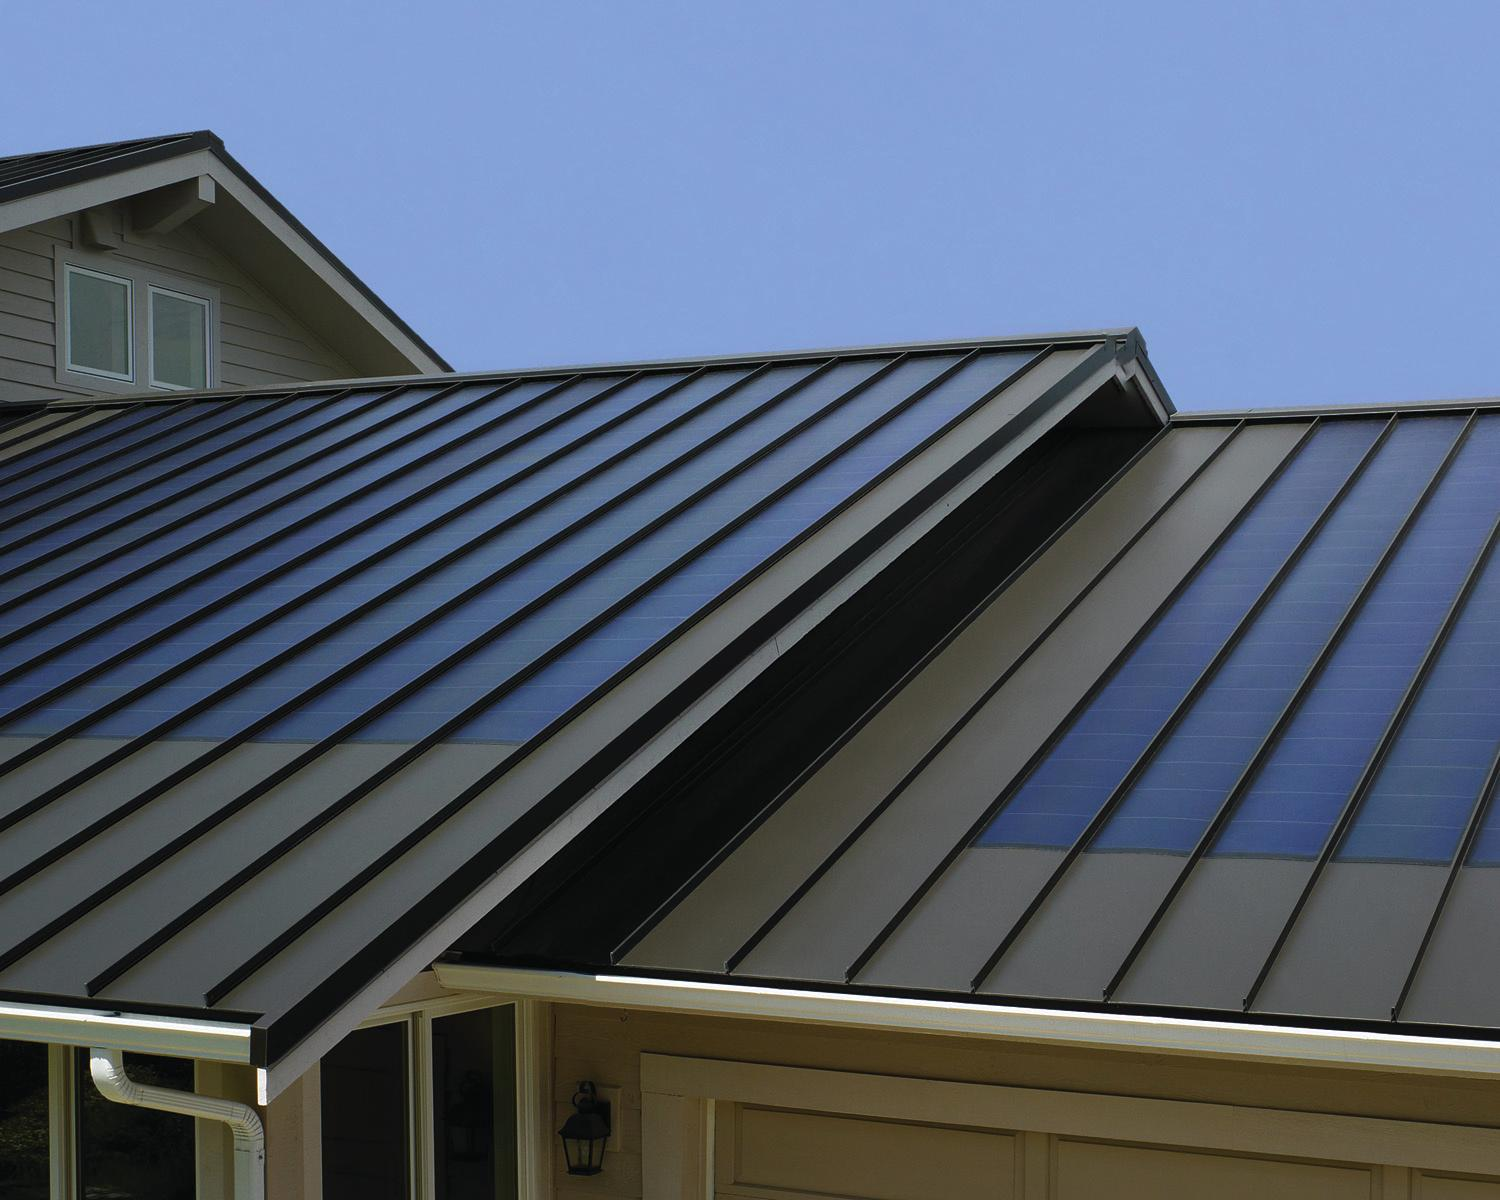 Custom bilt metals fusionsolar system remodeling for New roofing products